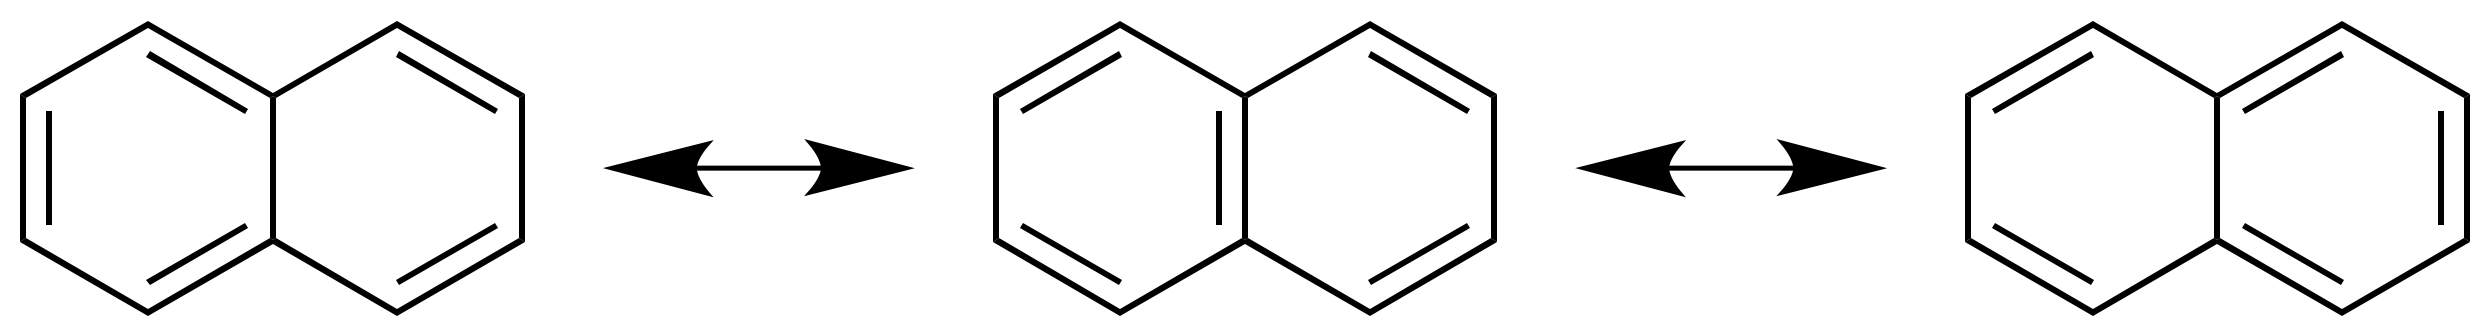 Naphthalene resonance.PNG